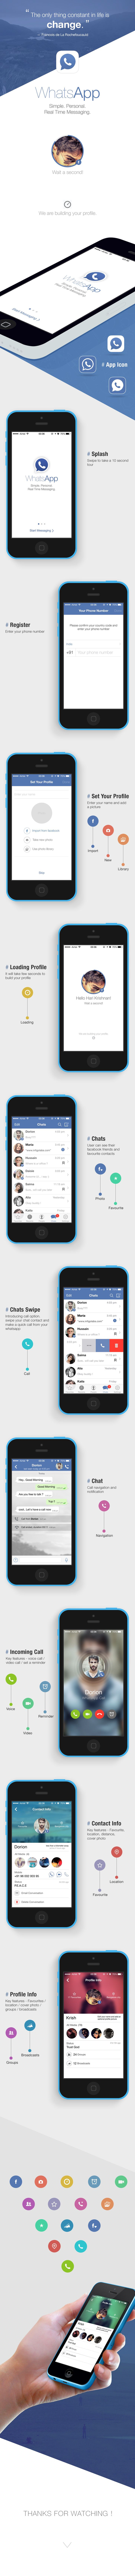 WhatsApp And Facebook UI/UX Awesome Design Concept (Graphic)